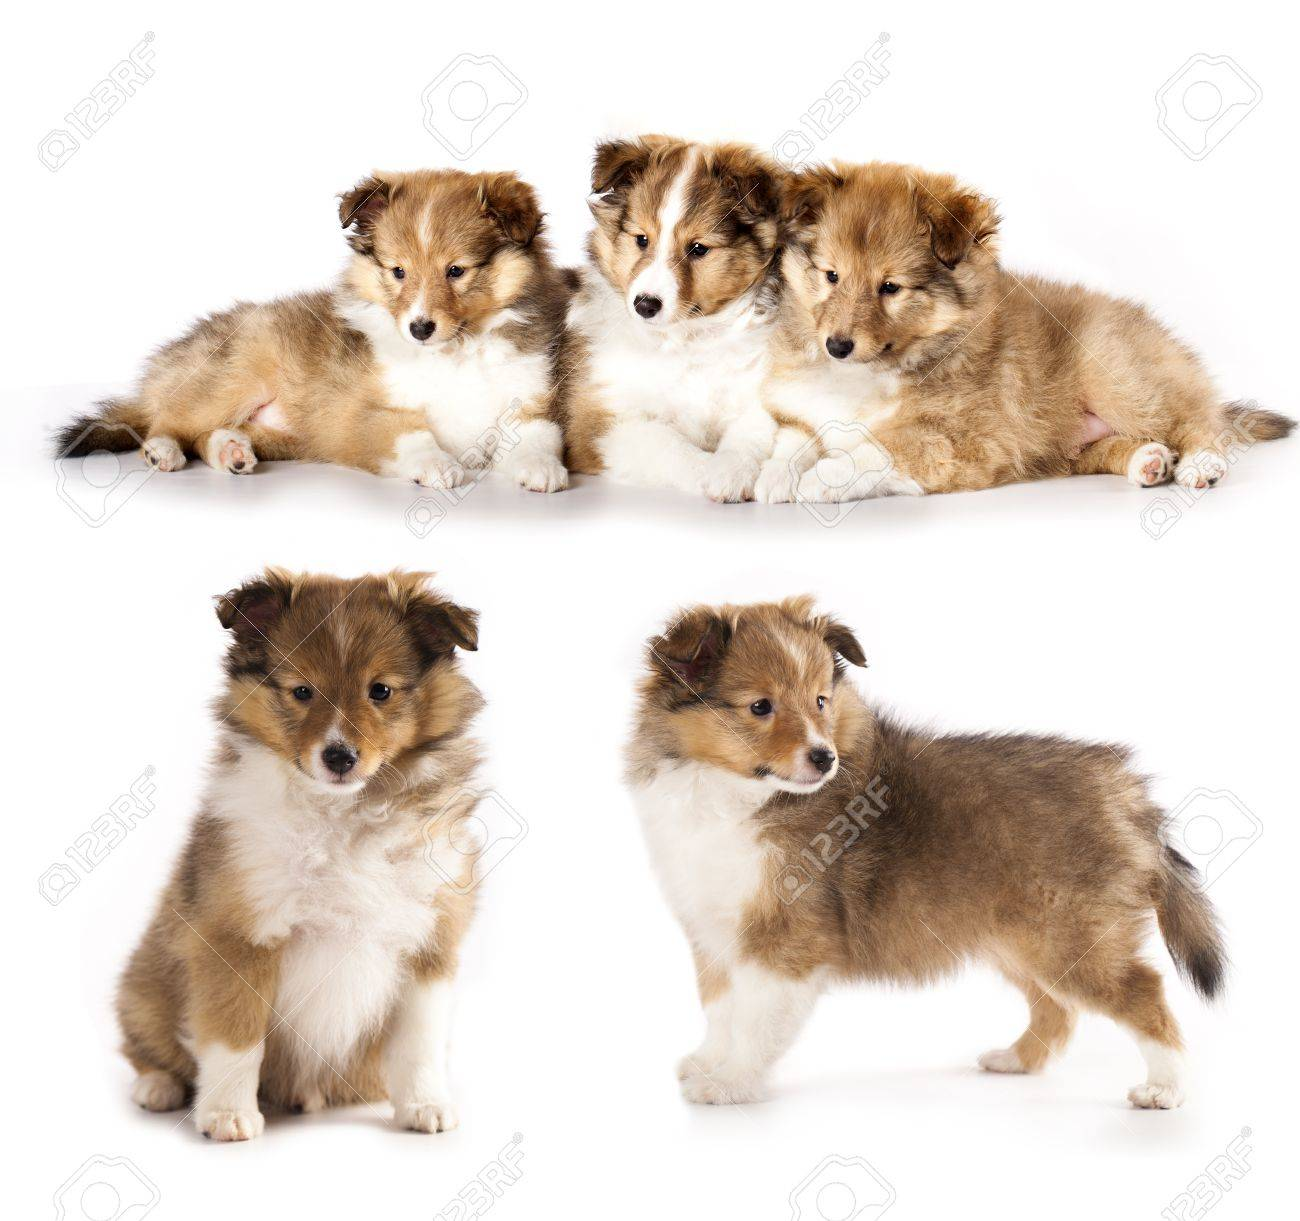 Sheltie Puppies Stock Photo Picture And Royalty Free Image Image